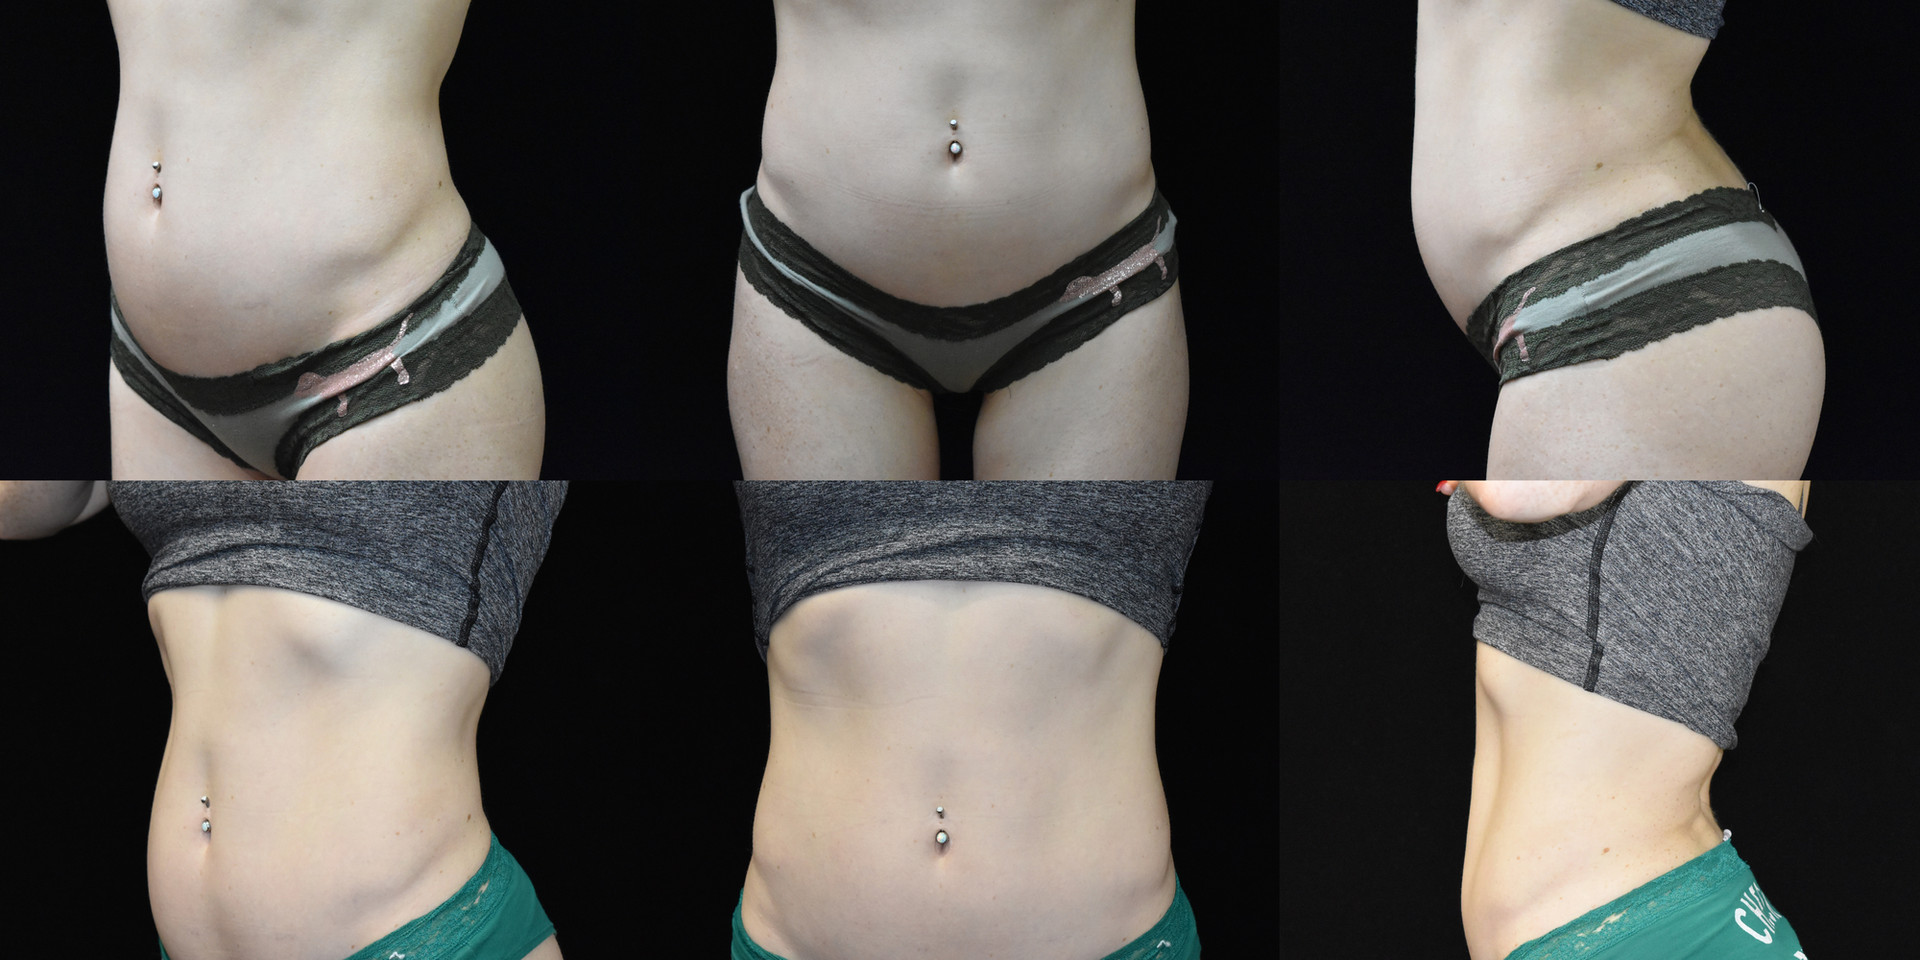 A patient three days after first UltraSlim treatment.